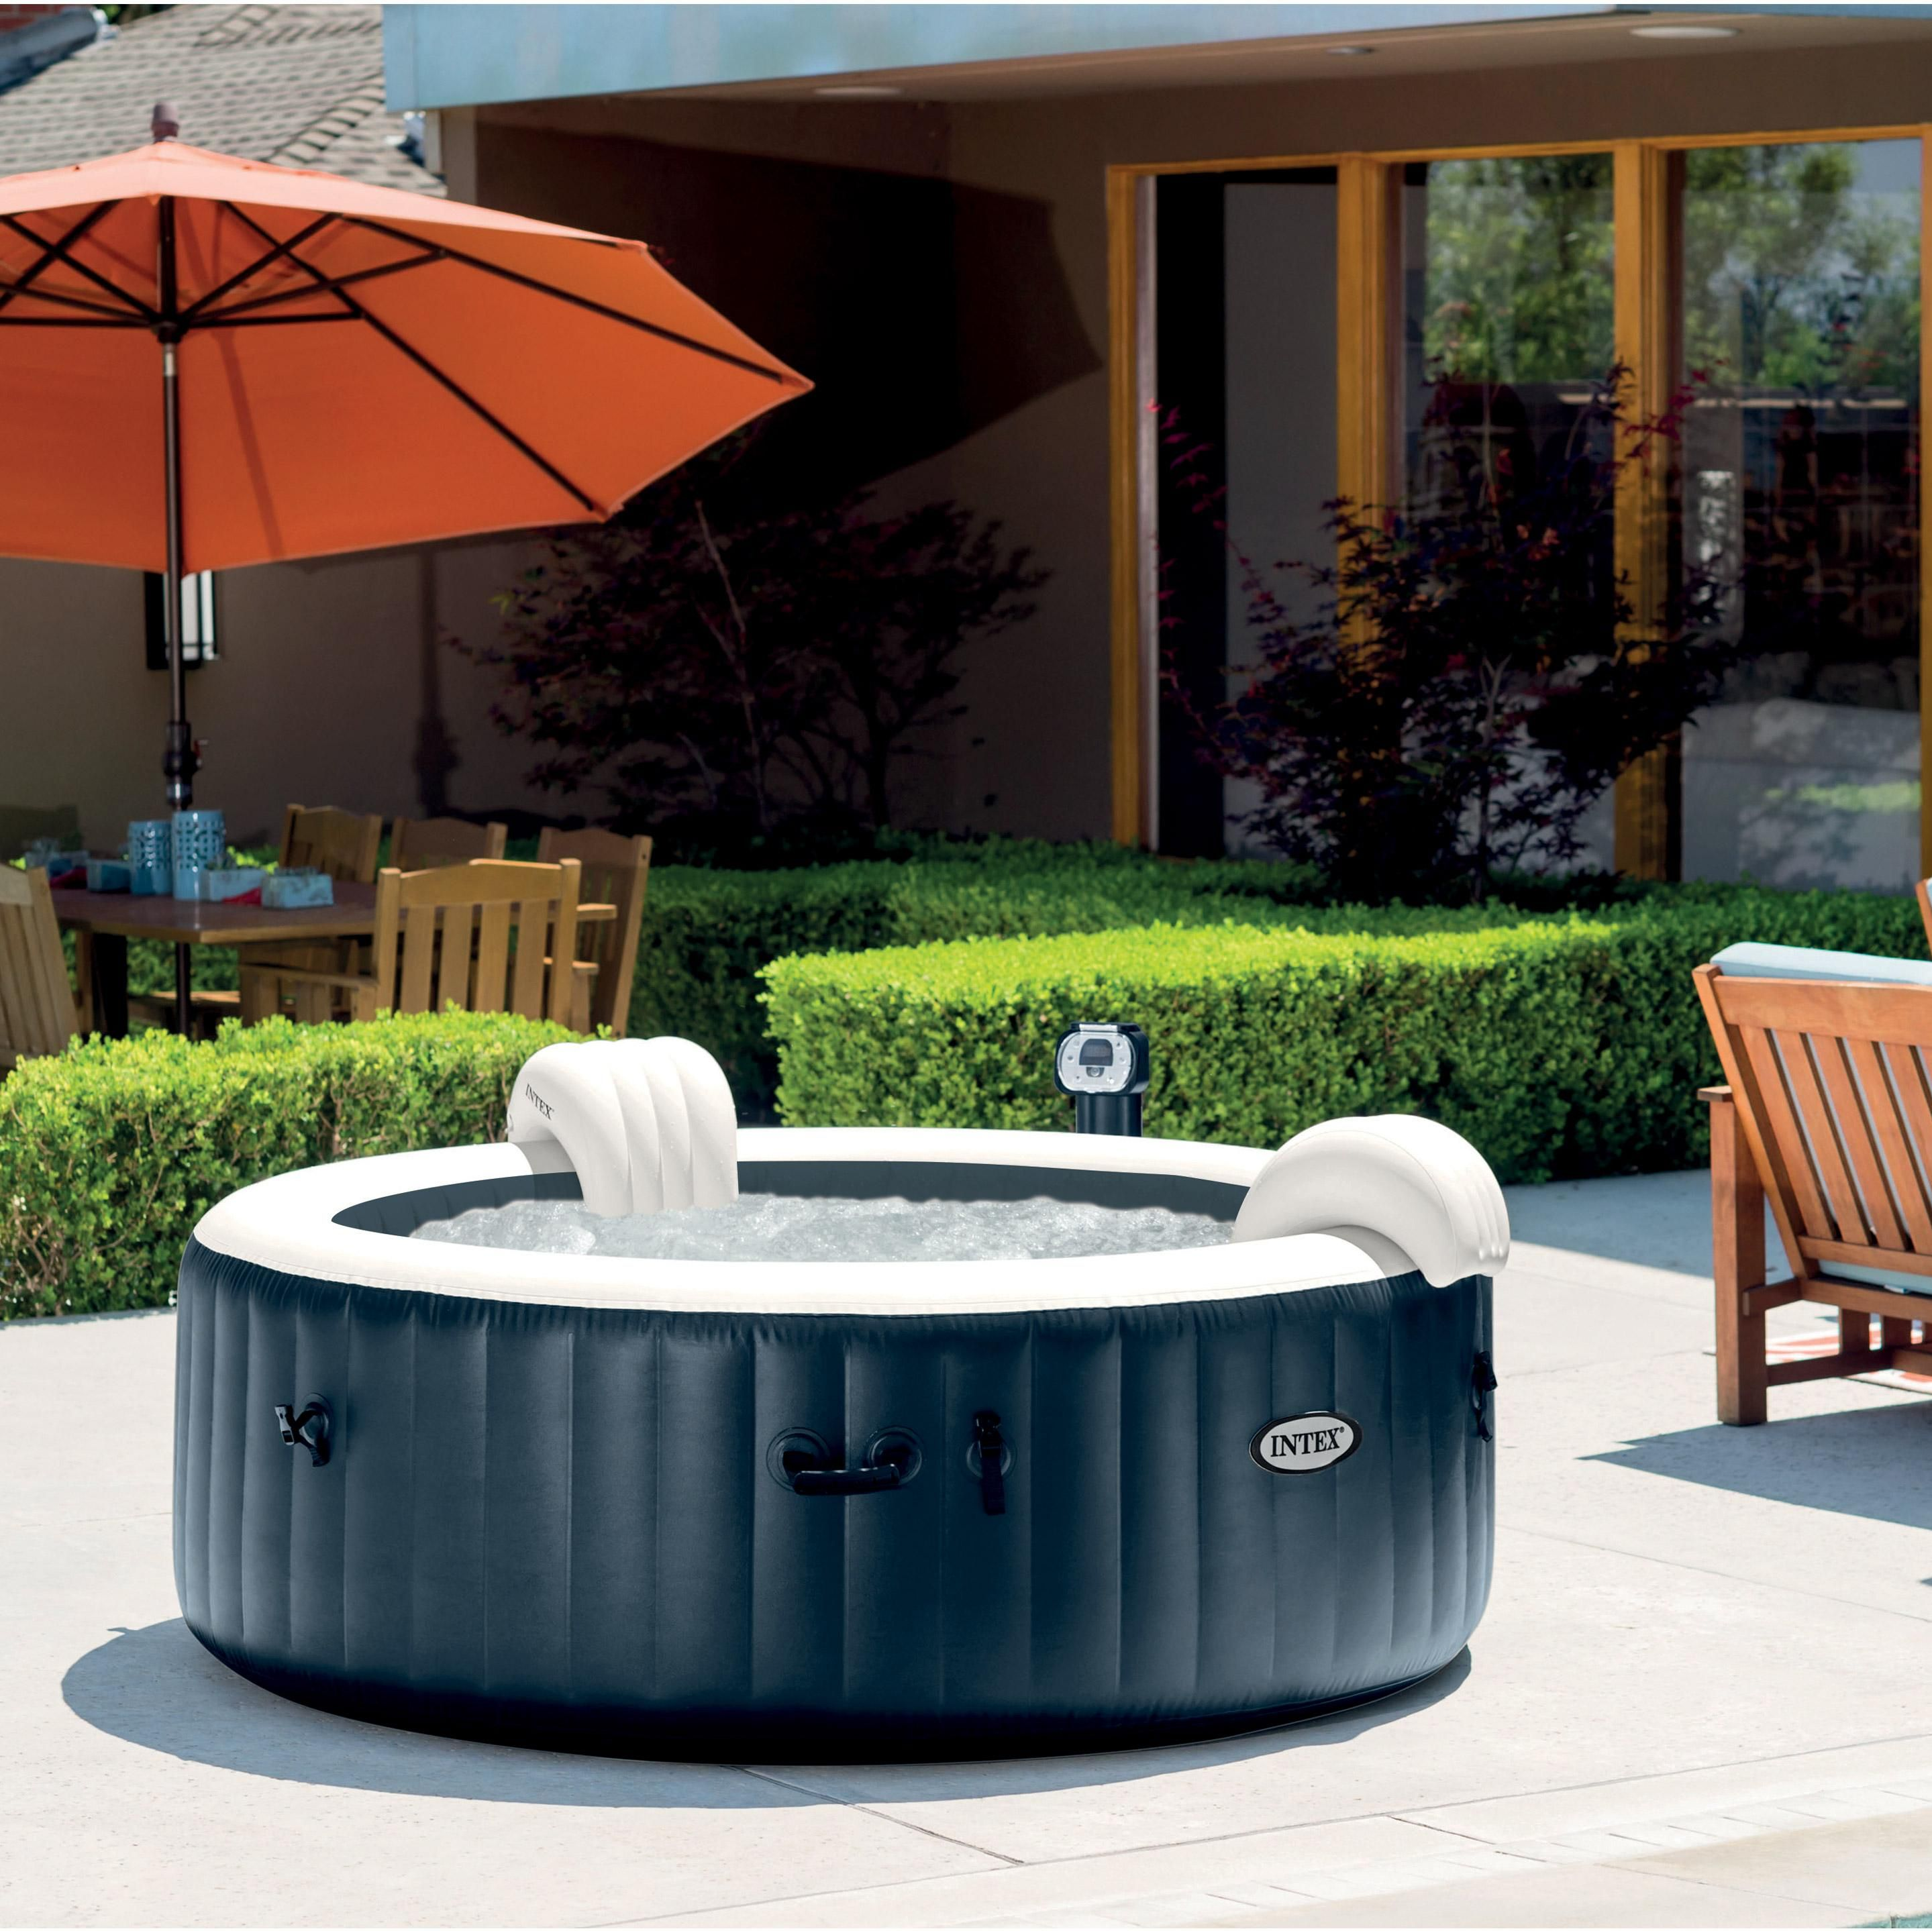 Spa Leroy Merlin Intex 6 Places spa gonflable intex purespa led rond, 6 places assises en